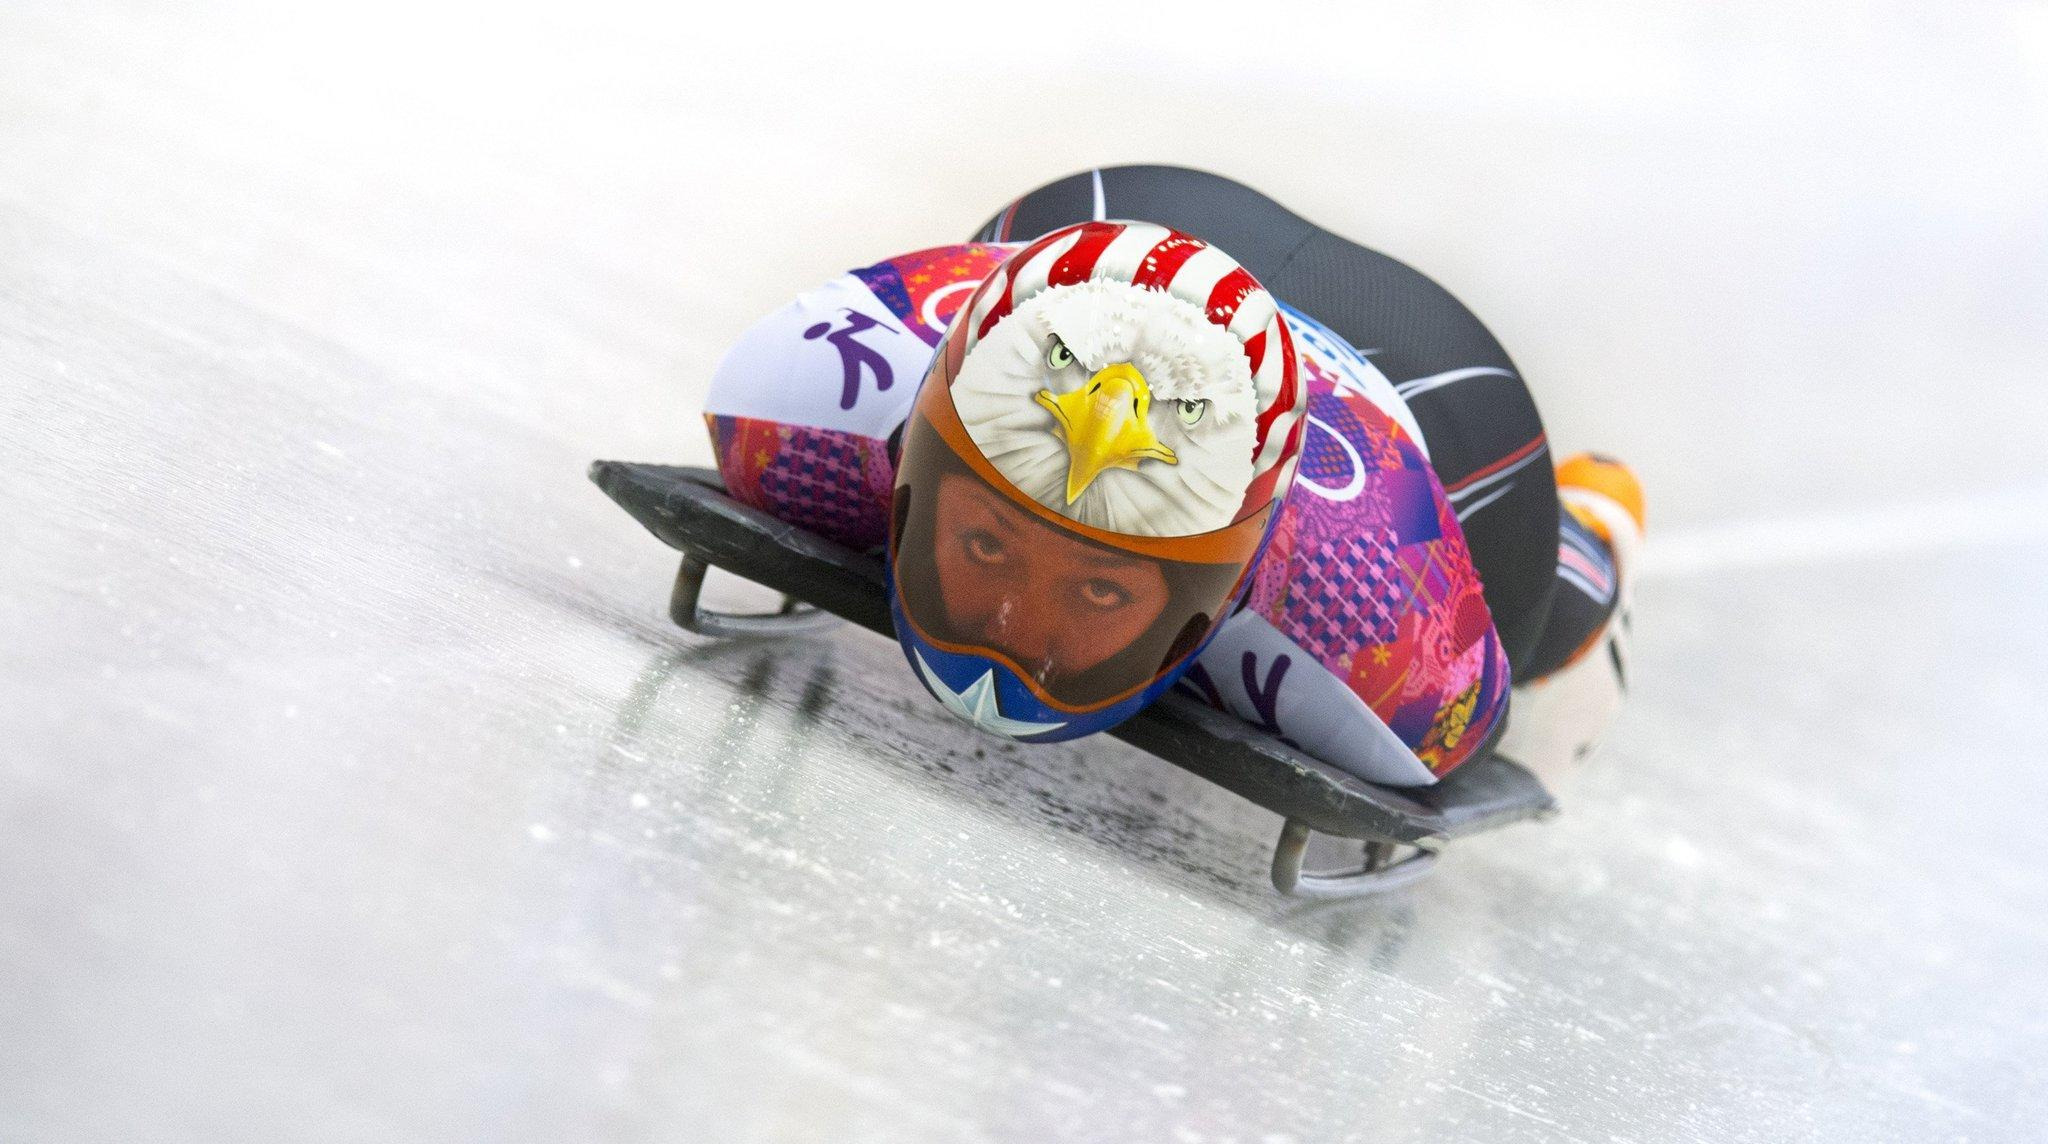 Katie Uhlaender on the track for her second qualifying run in the women's skeleton event.